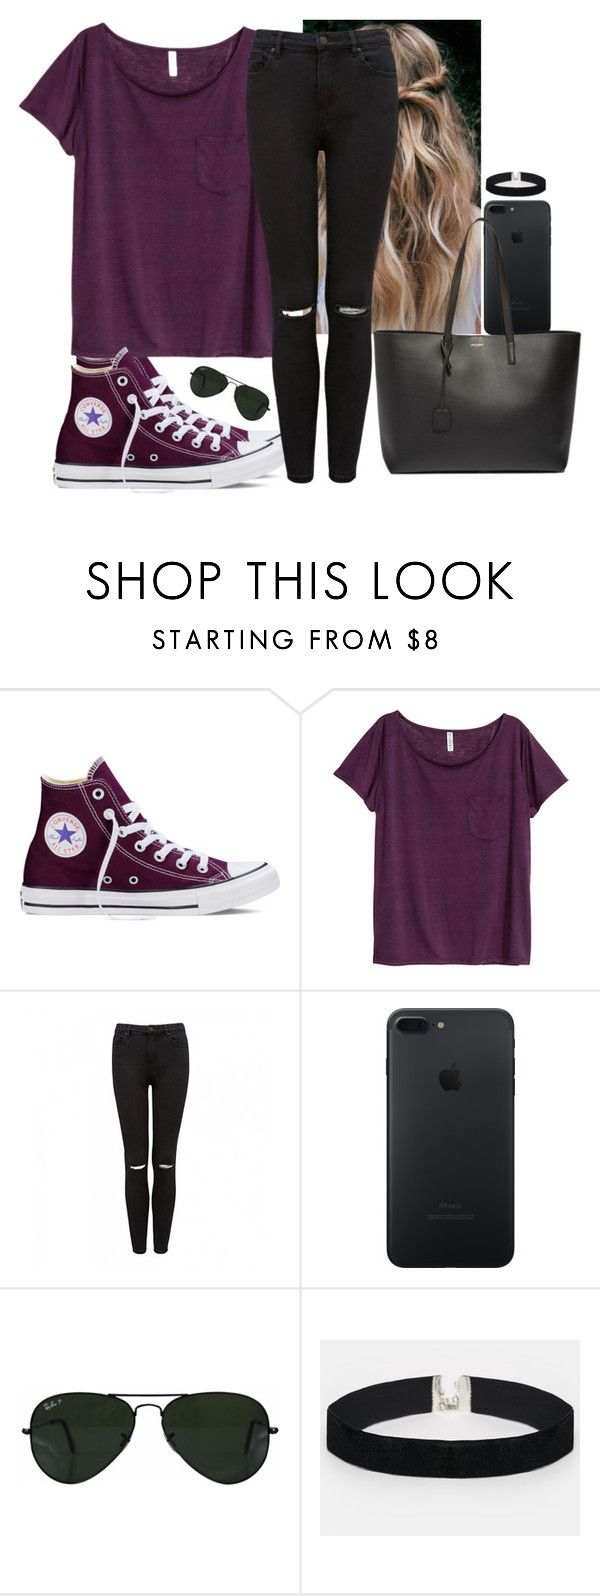 """""""What does love mean💙?"""" by hannahmcpherson12 ❤ liked on Polyvore featuring Converse, H&M, Forever New, Ray-Ban, ASOS and Yves Saint Laurent"""